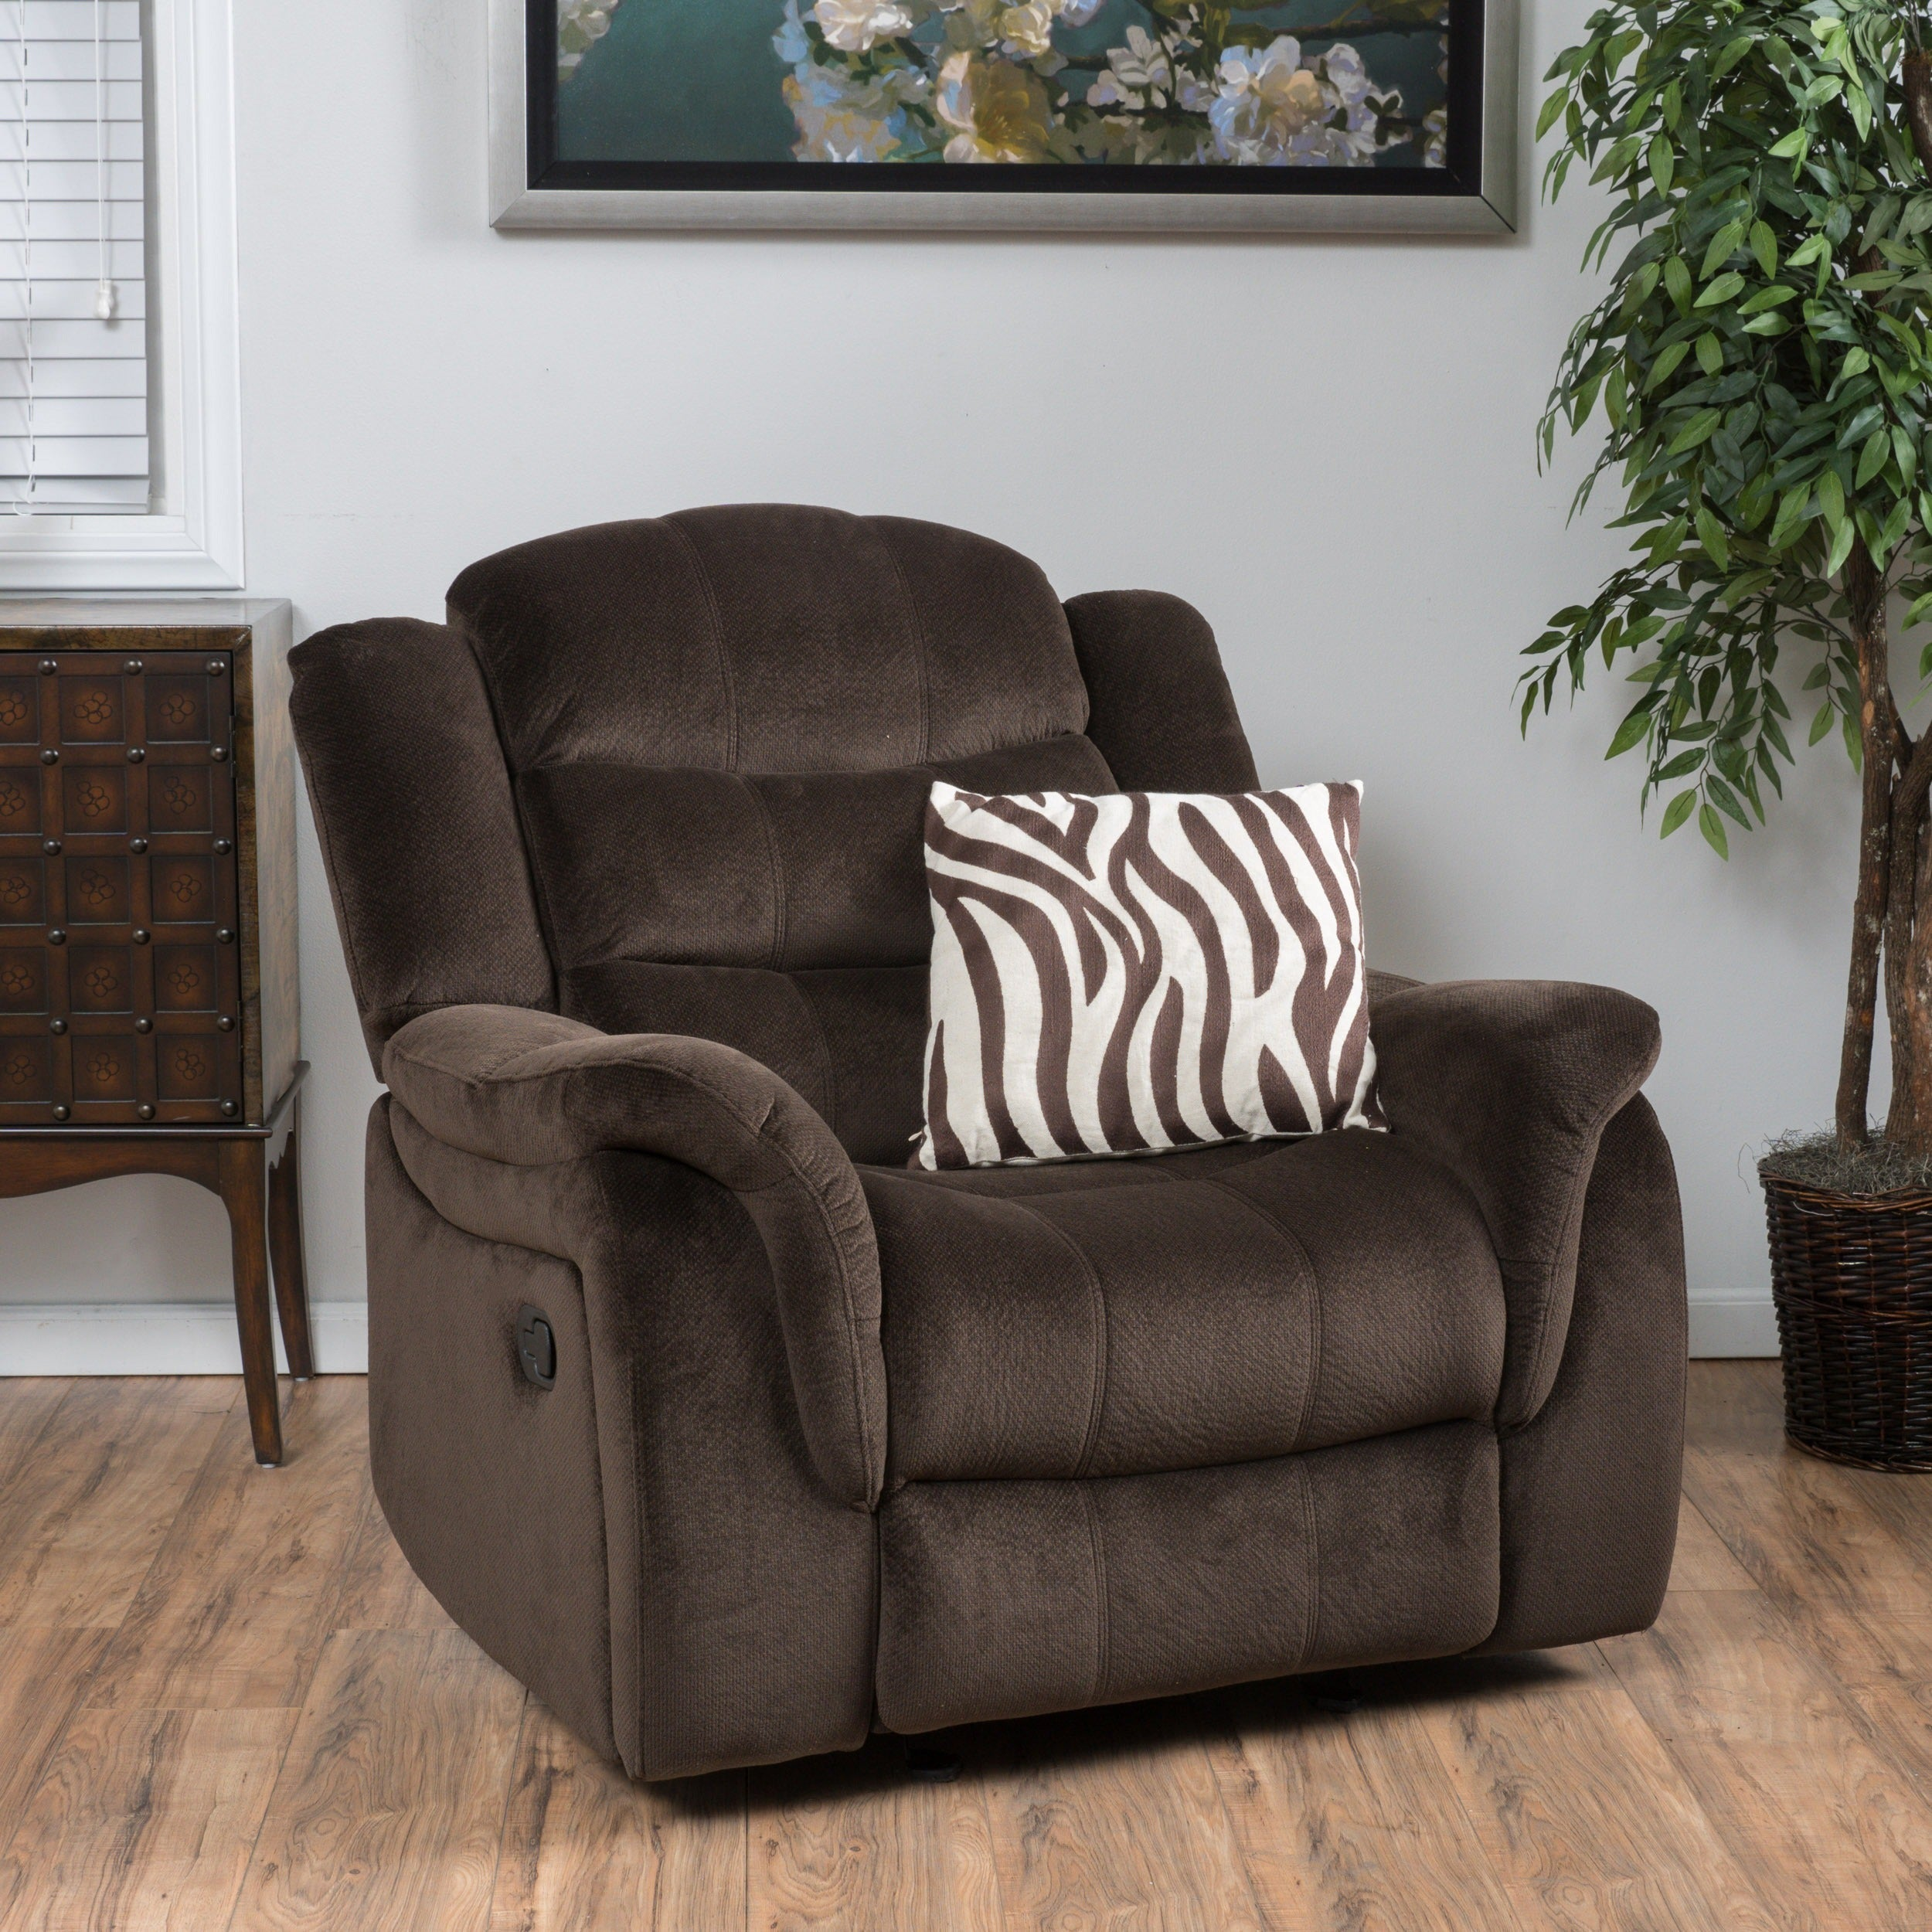 matching for available only recliner loveseat reclining chair rocker ridgecrest sofa american tan freight